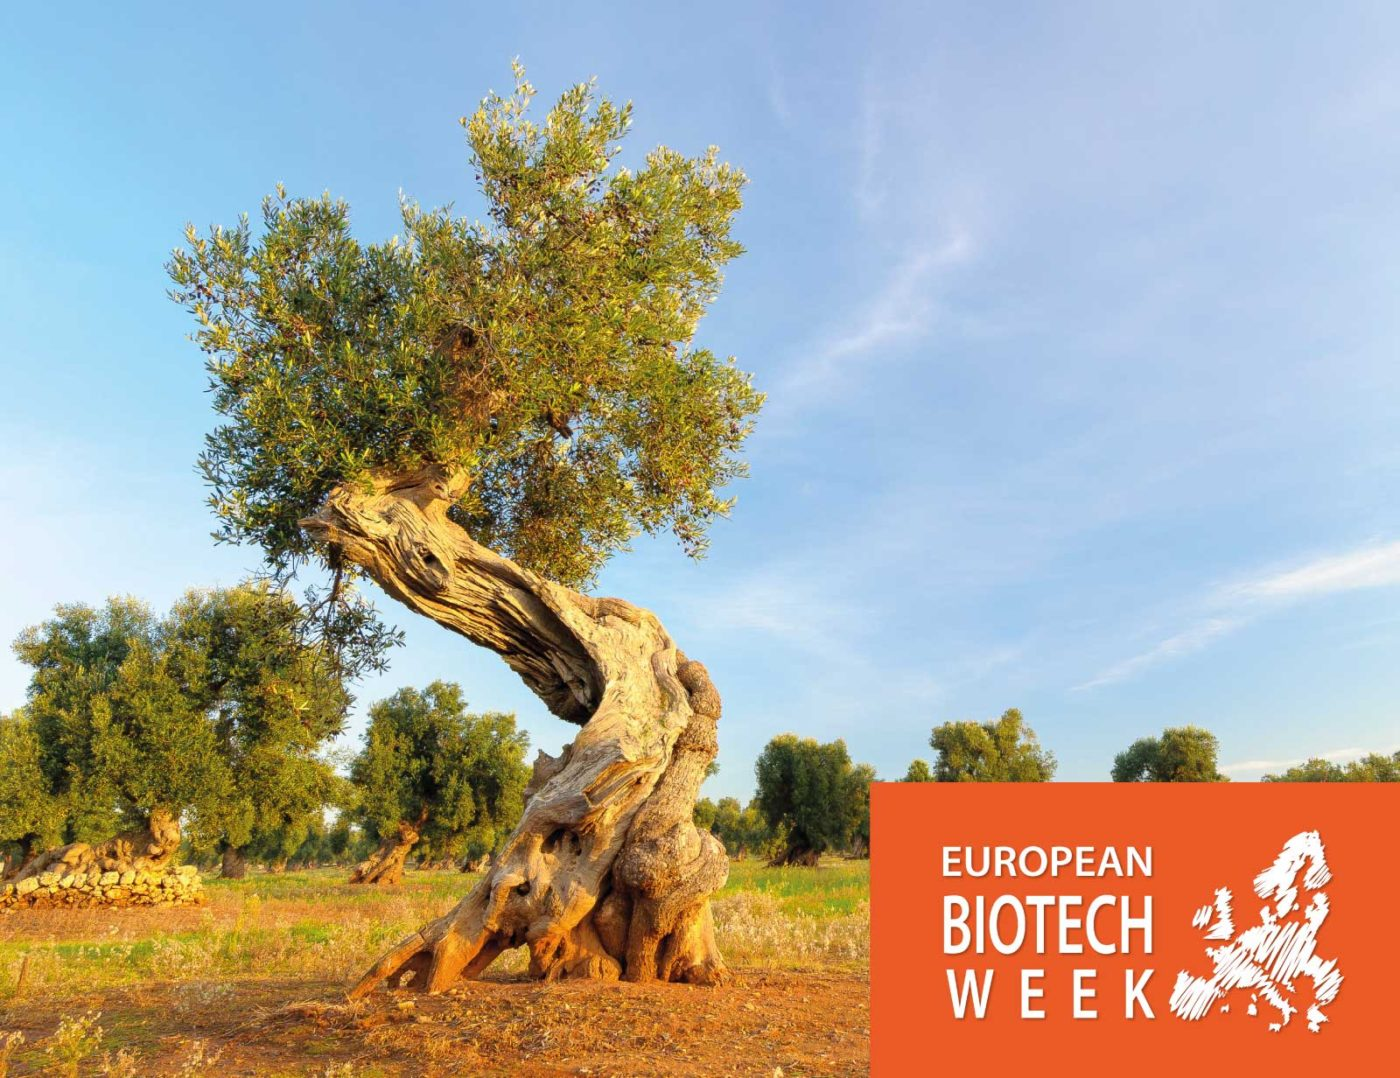 European Biotech Week 2018